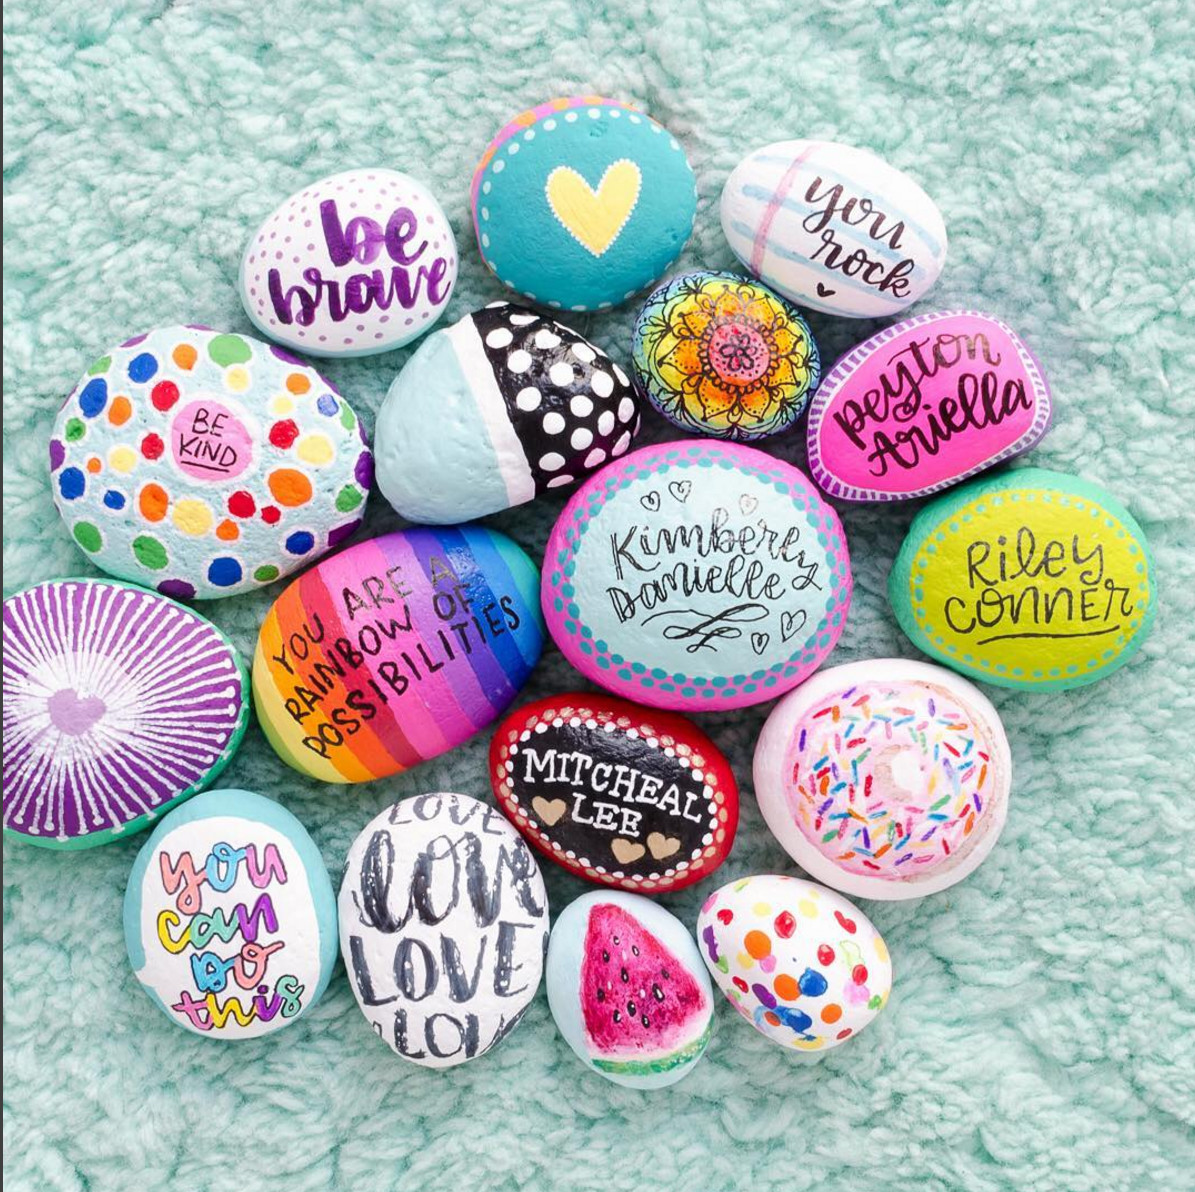 Kindness Rocks Quotes  10 INSPIRING PAINTED ROCKS FOR SPREADING KINDNESS